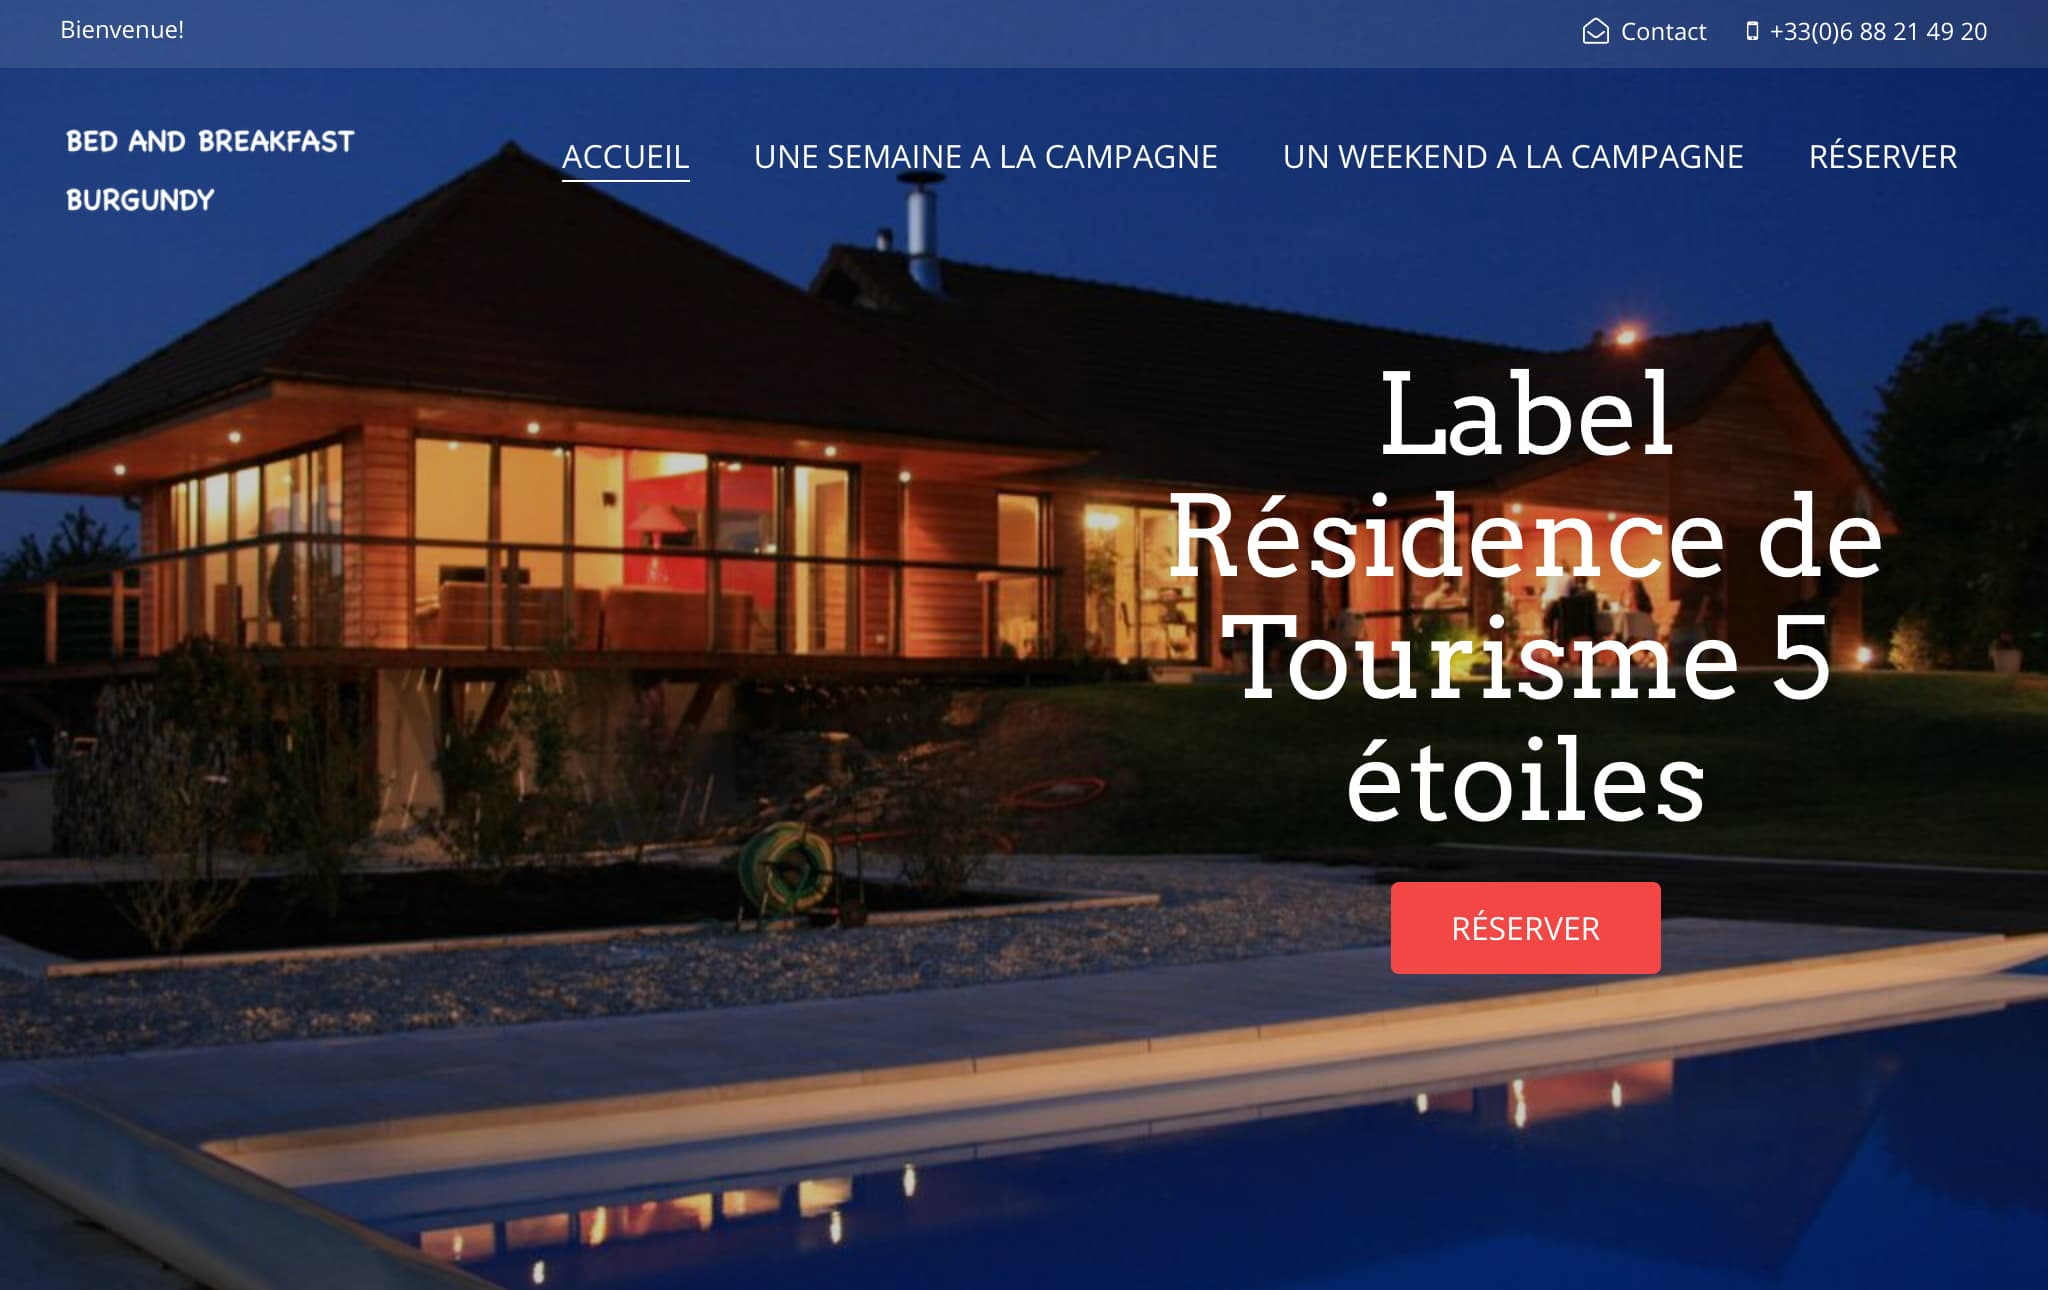 Bed and breakfast burgundy